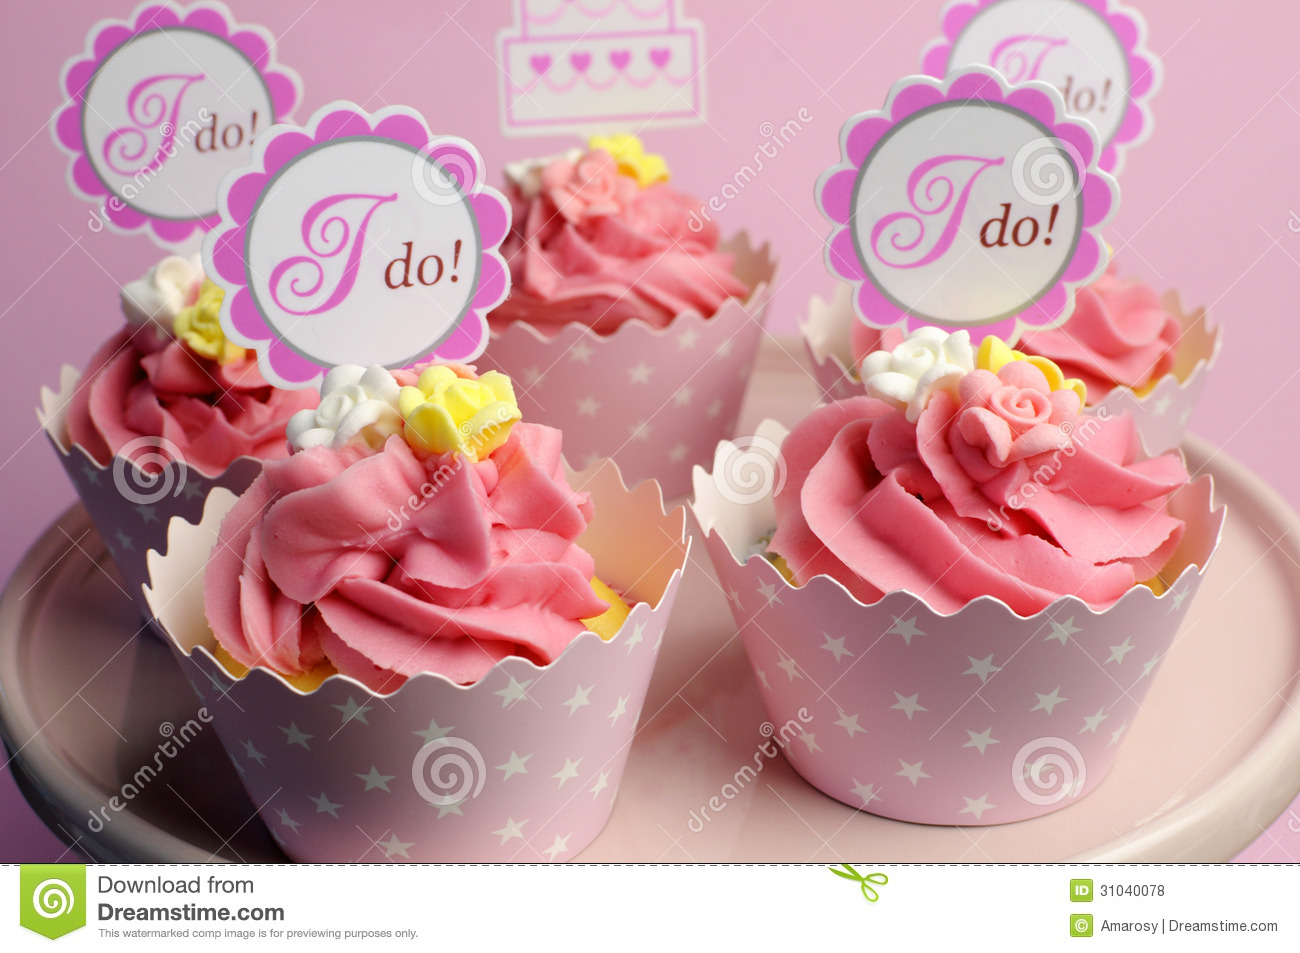 Pink Wedding Cupcakes With I Do Topper Signs - Horizontal. Stock ...